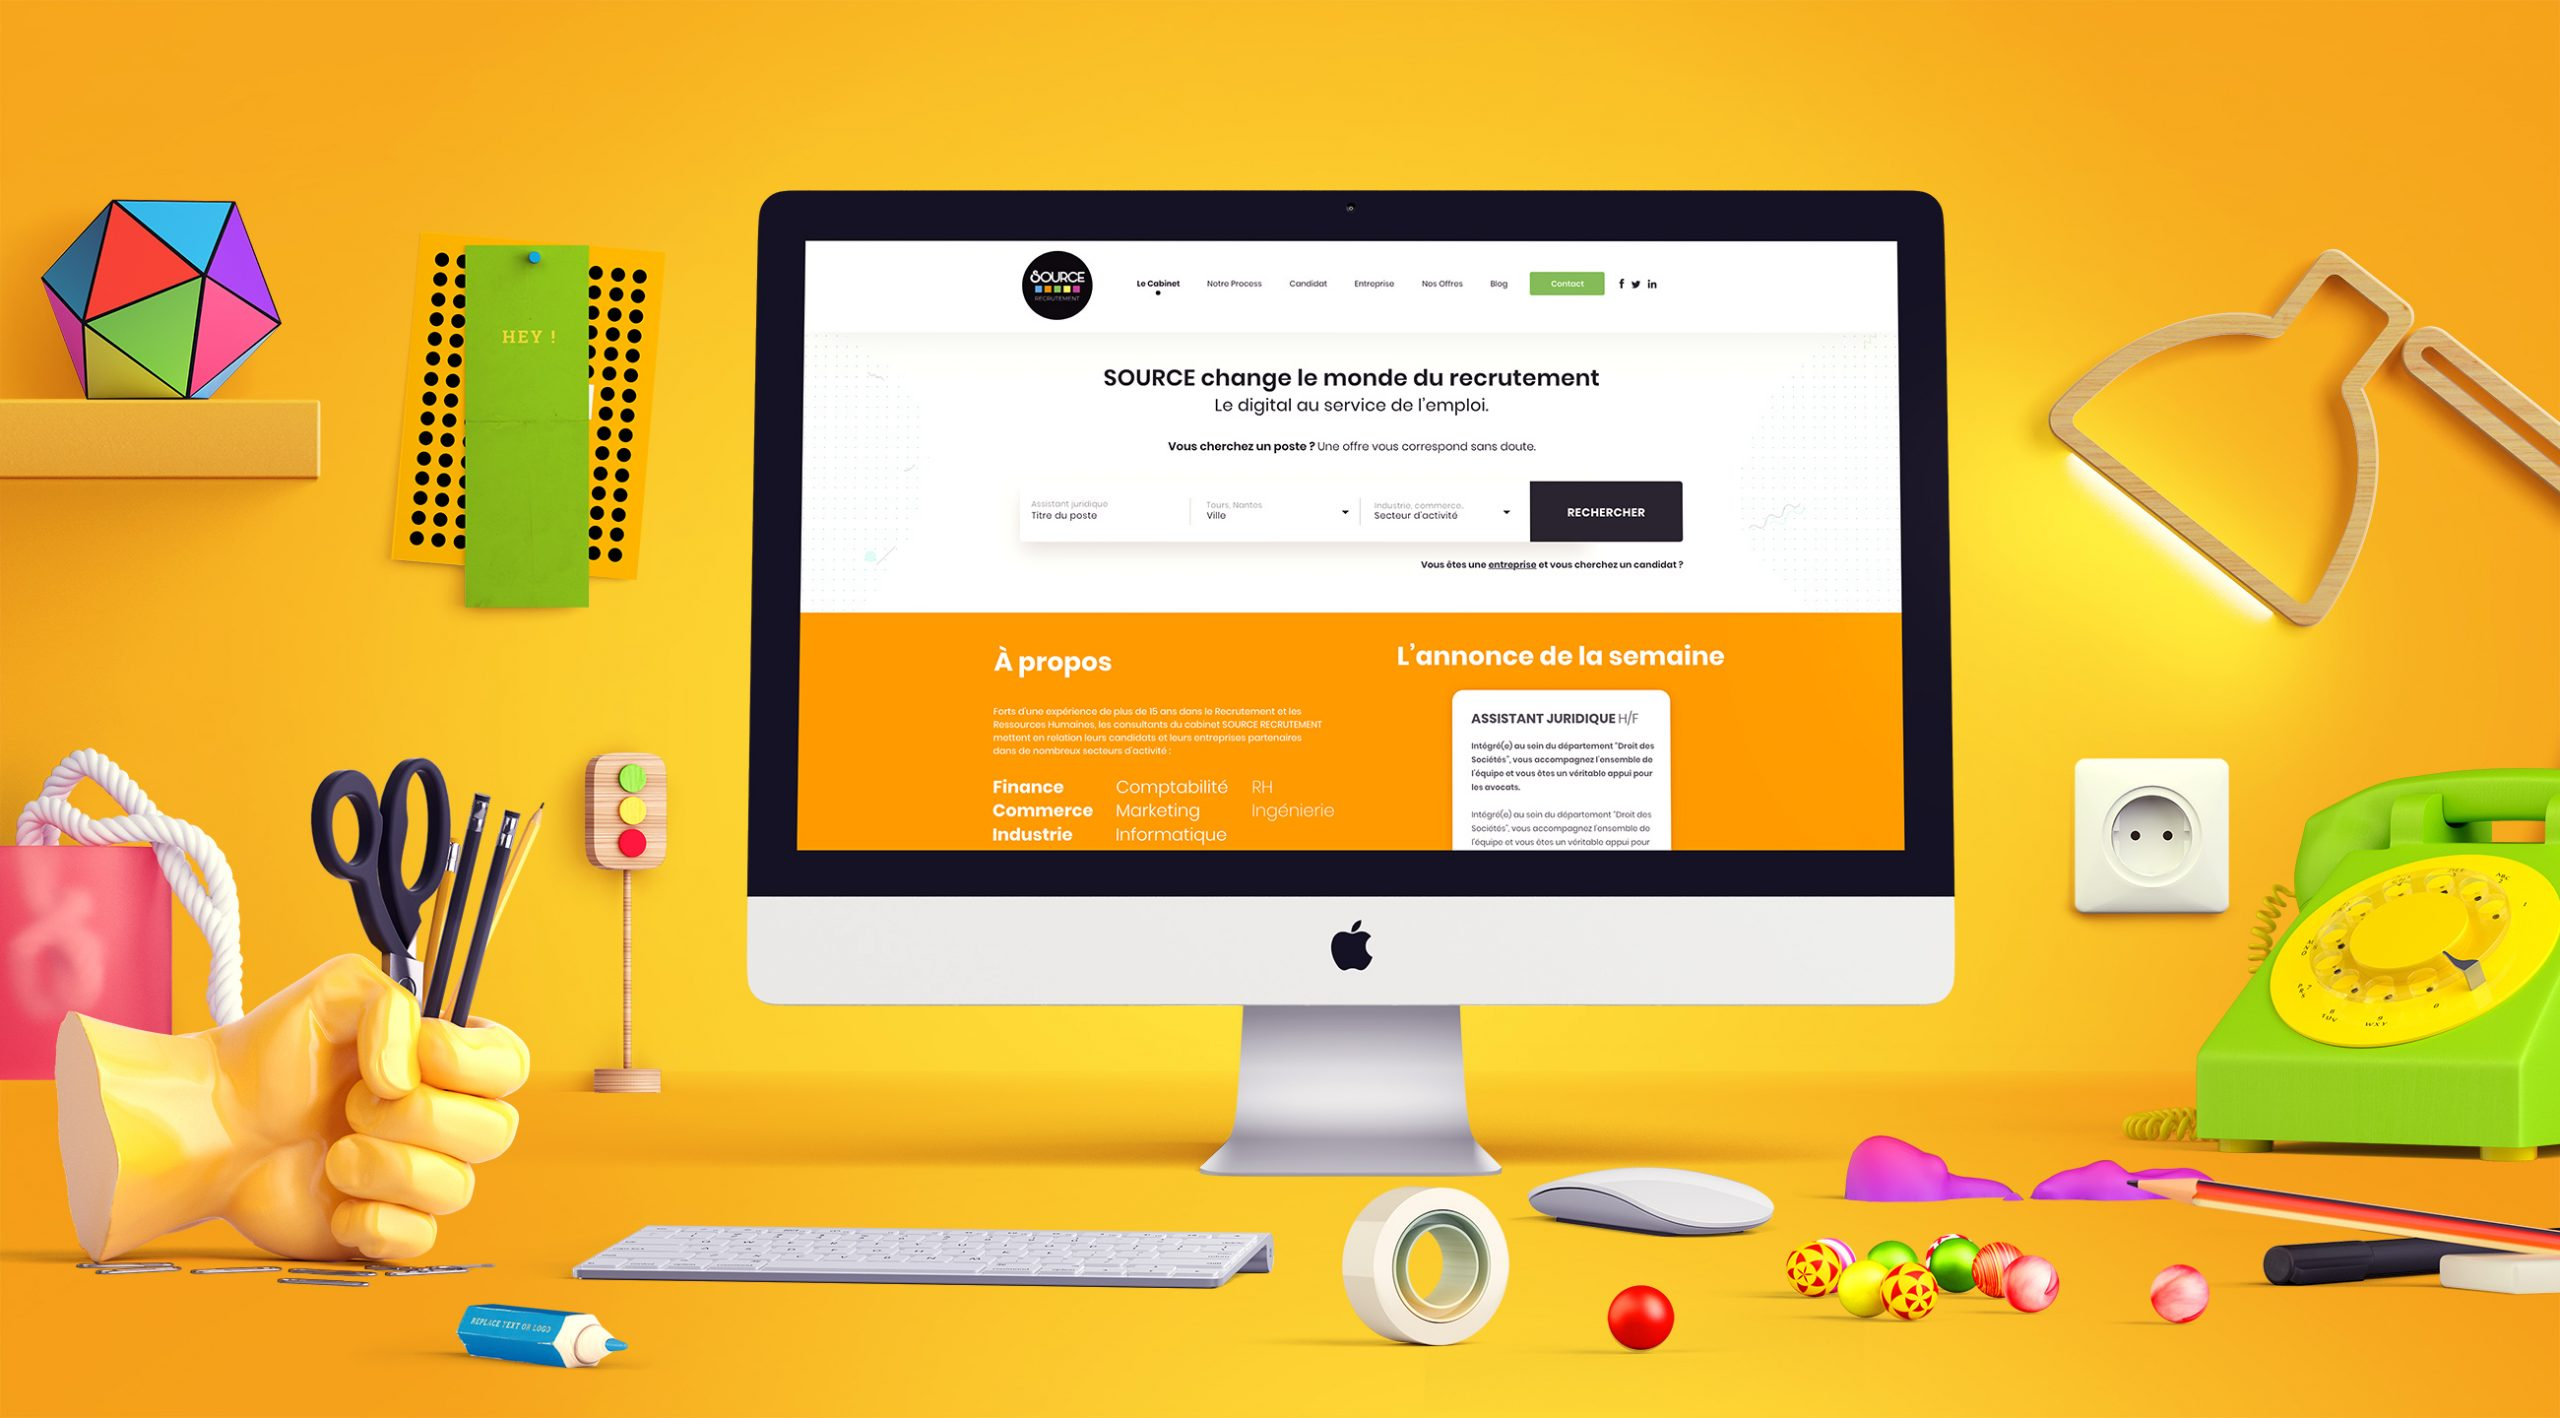 Mockup-source-letb-synergie-agence-communication